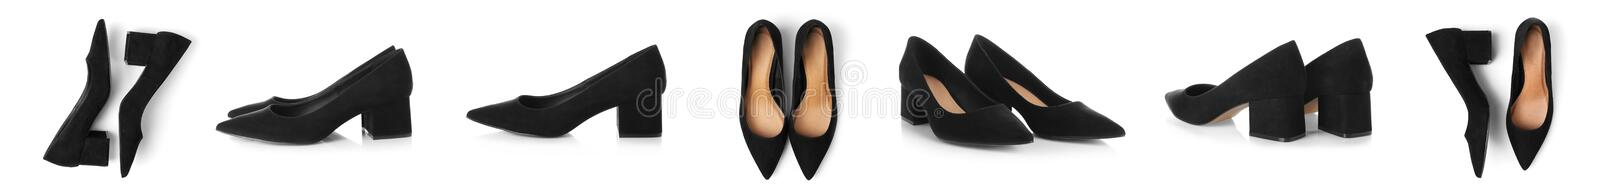 Pair of female shoes stock photo